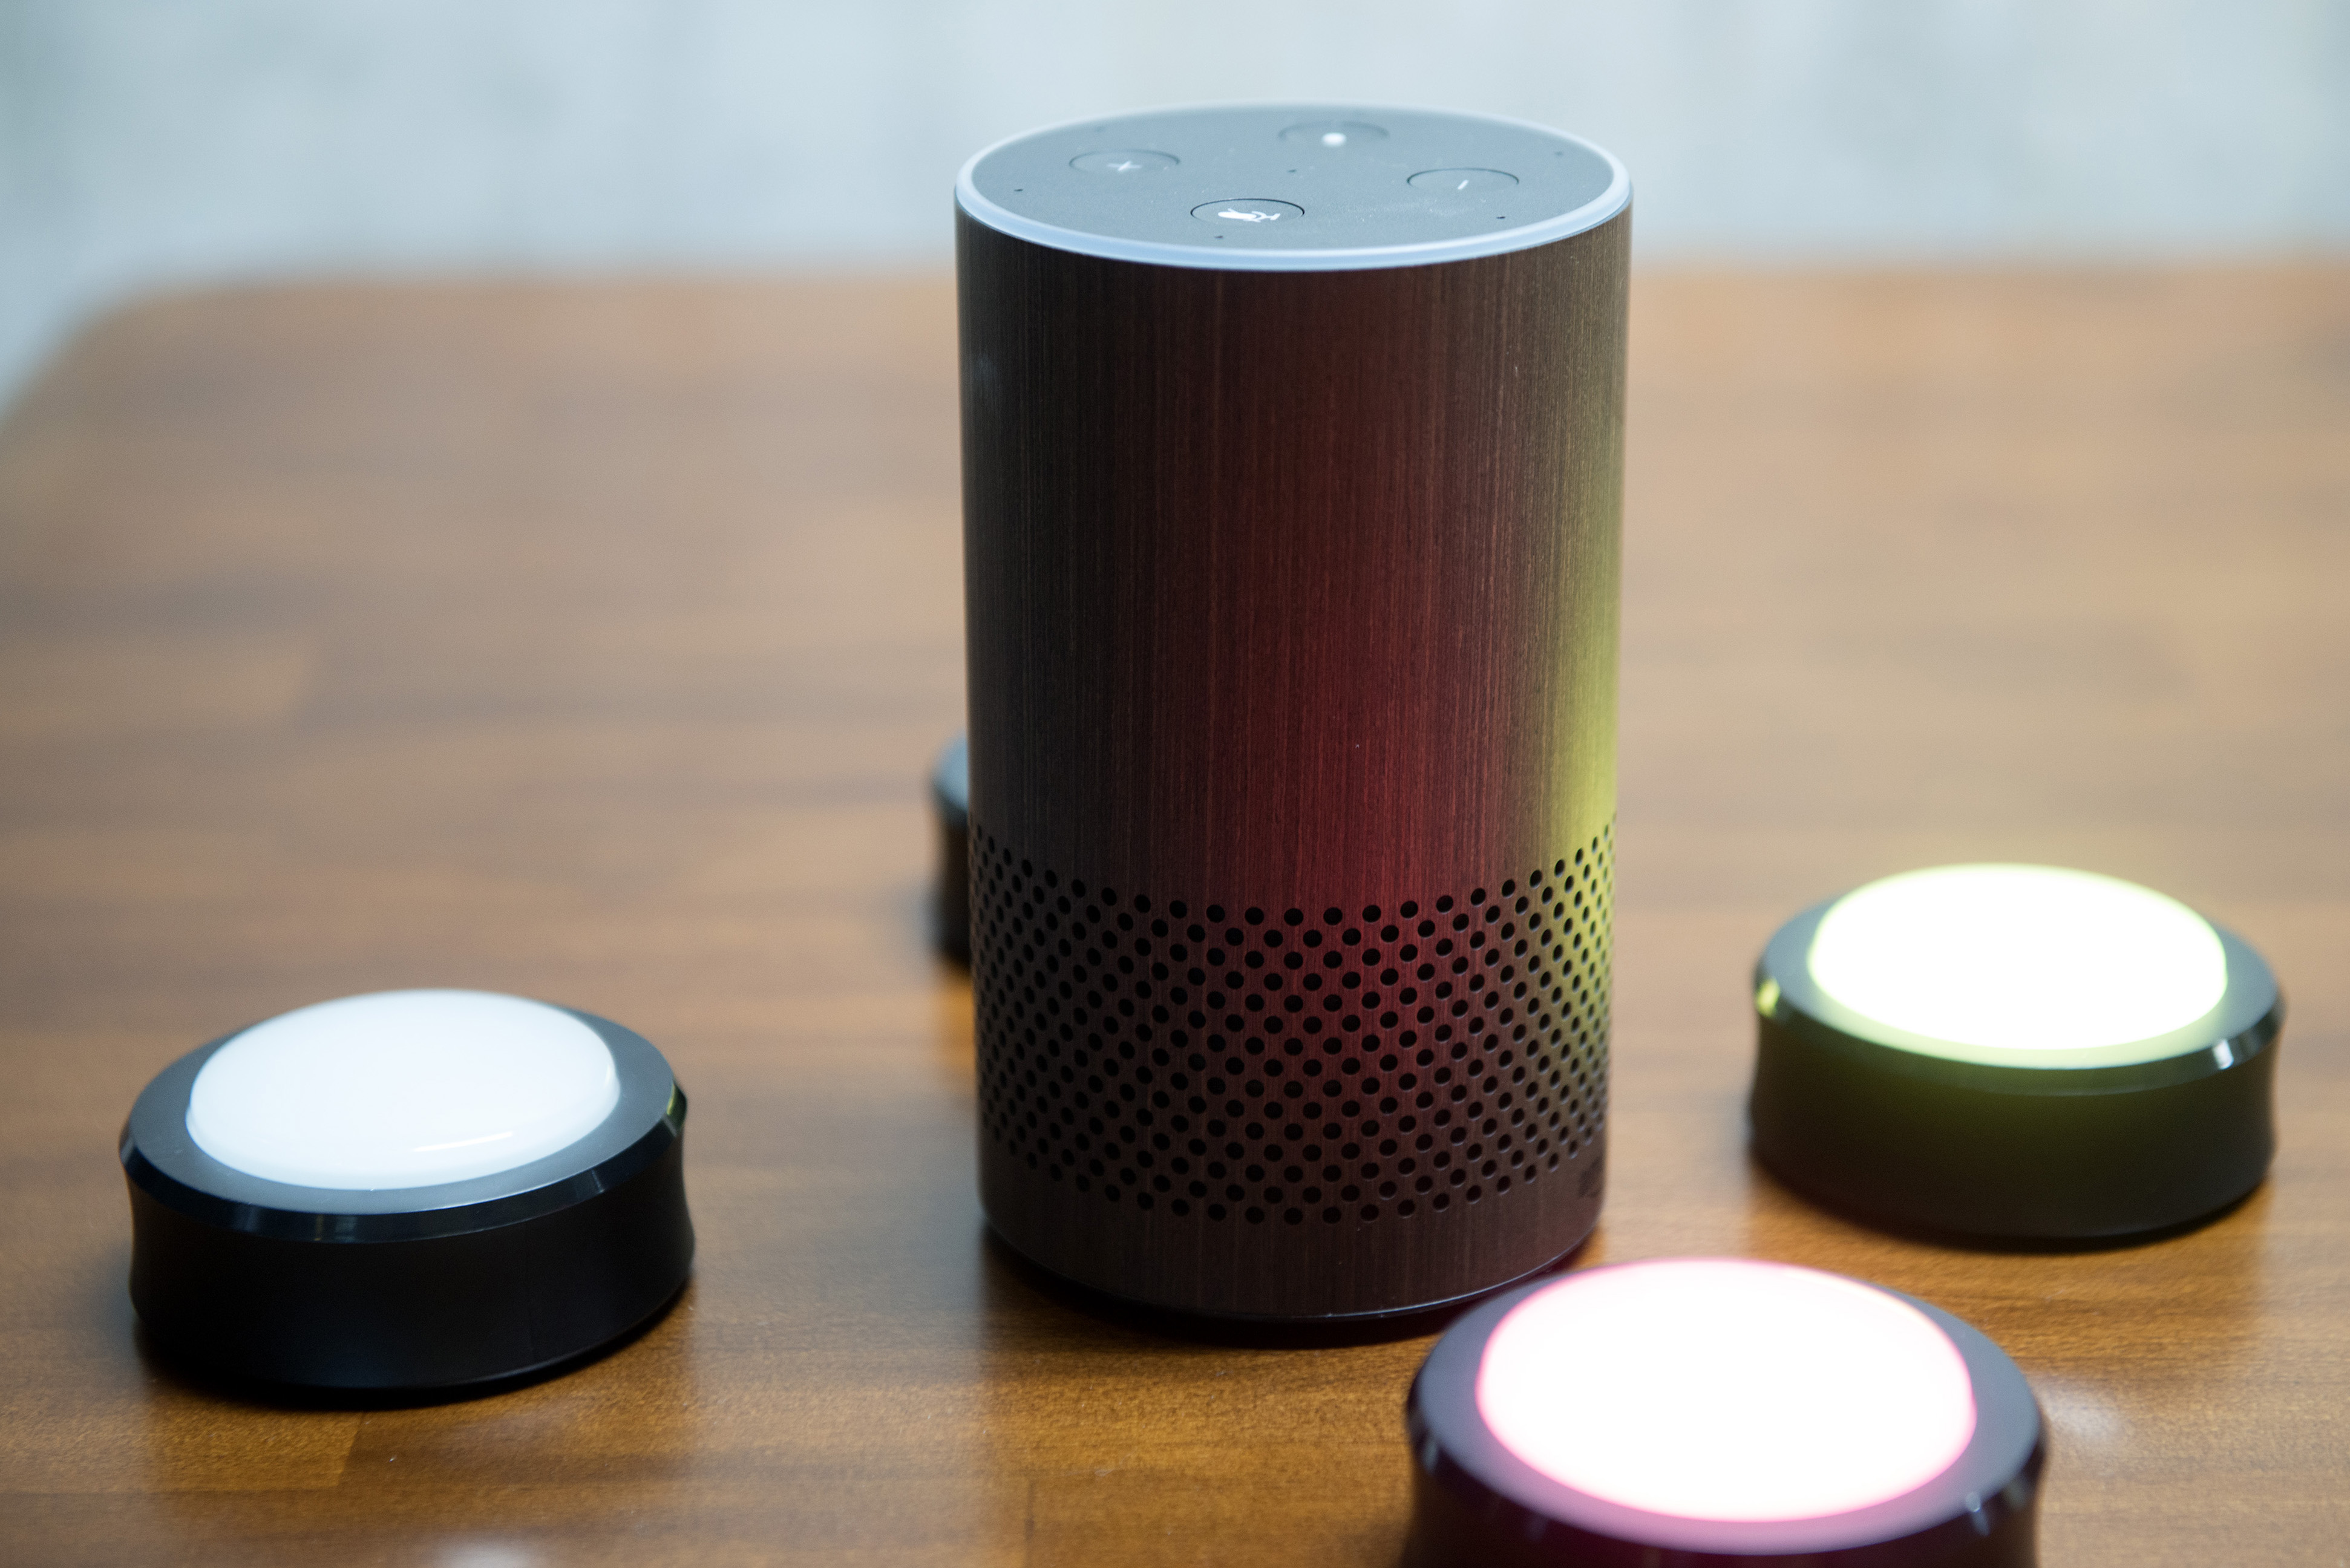 https://assets.sourcemedia.com/4e/d7/db0f2ce644edb68f5ad4dfb8e1be/amazon.Echo.Bloomberg.jpg